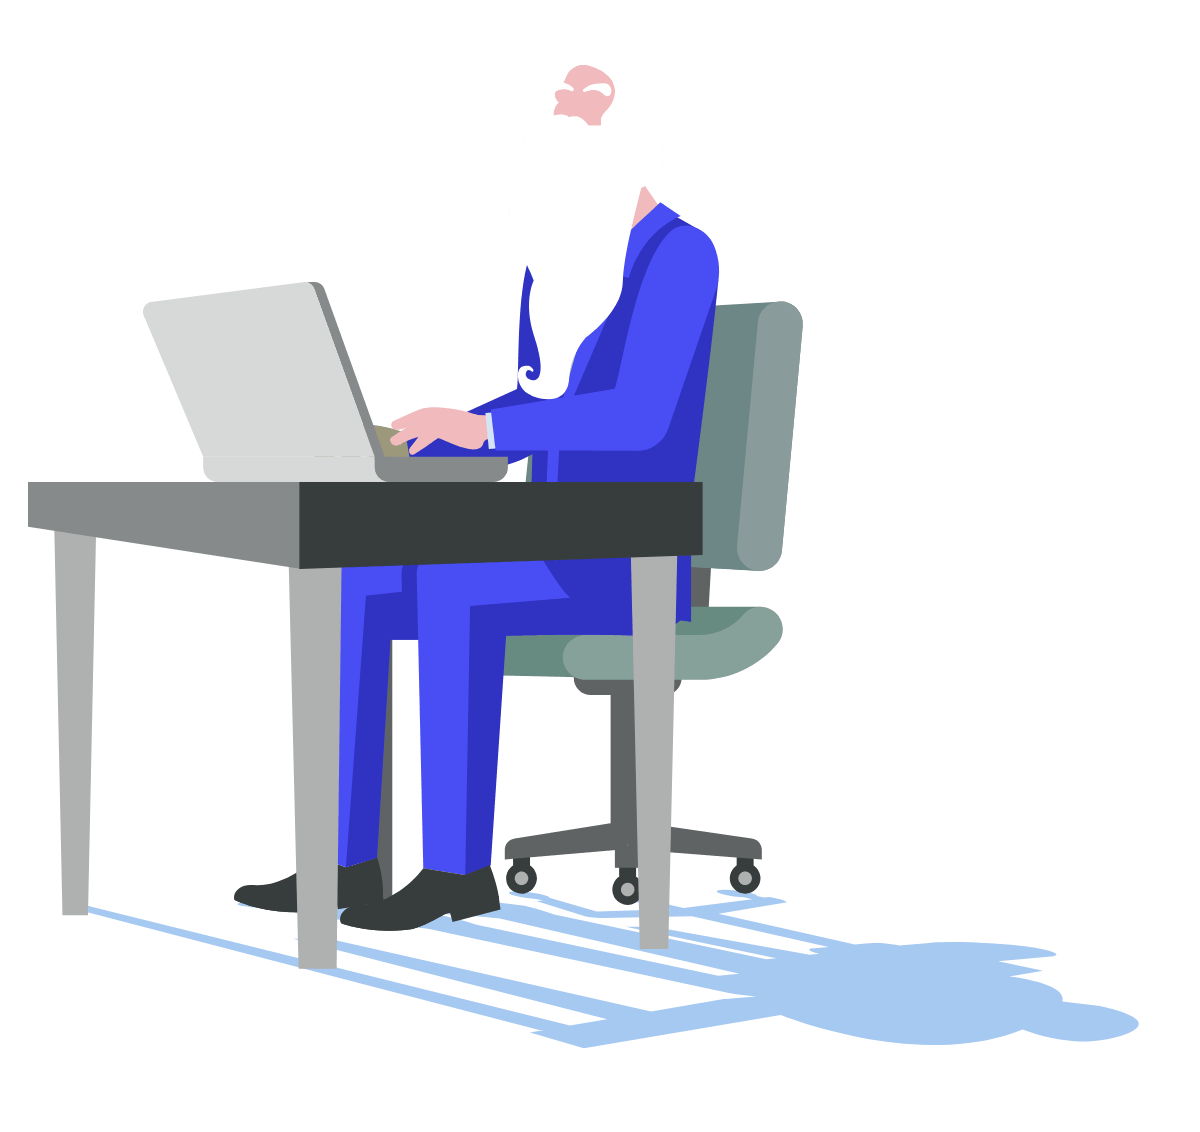 Wizard at computer